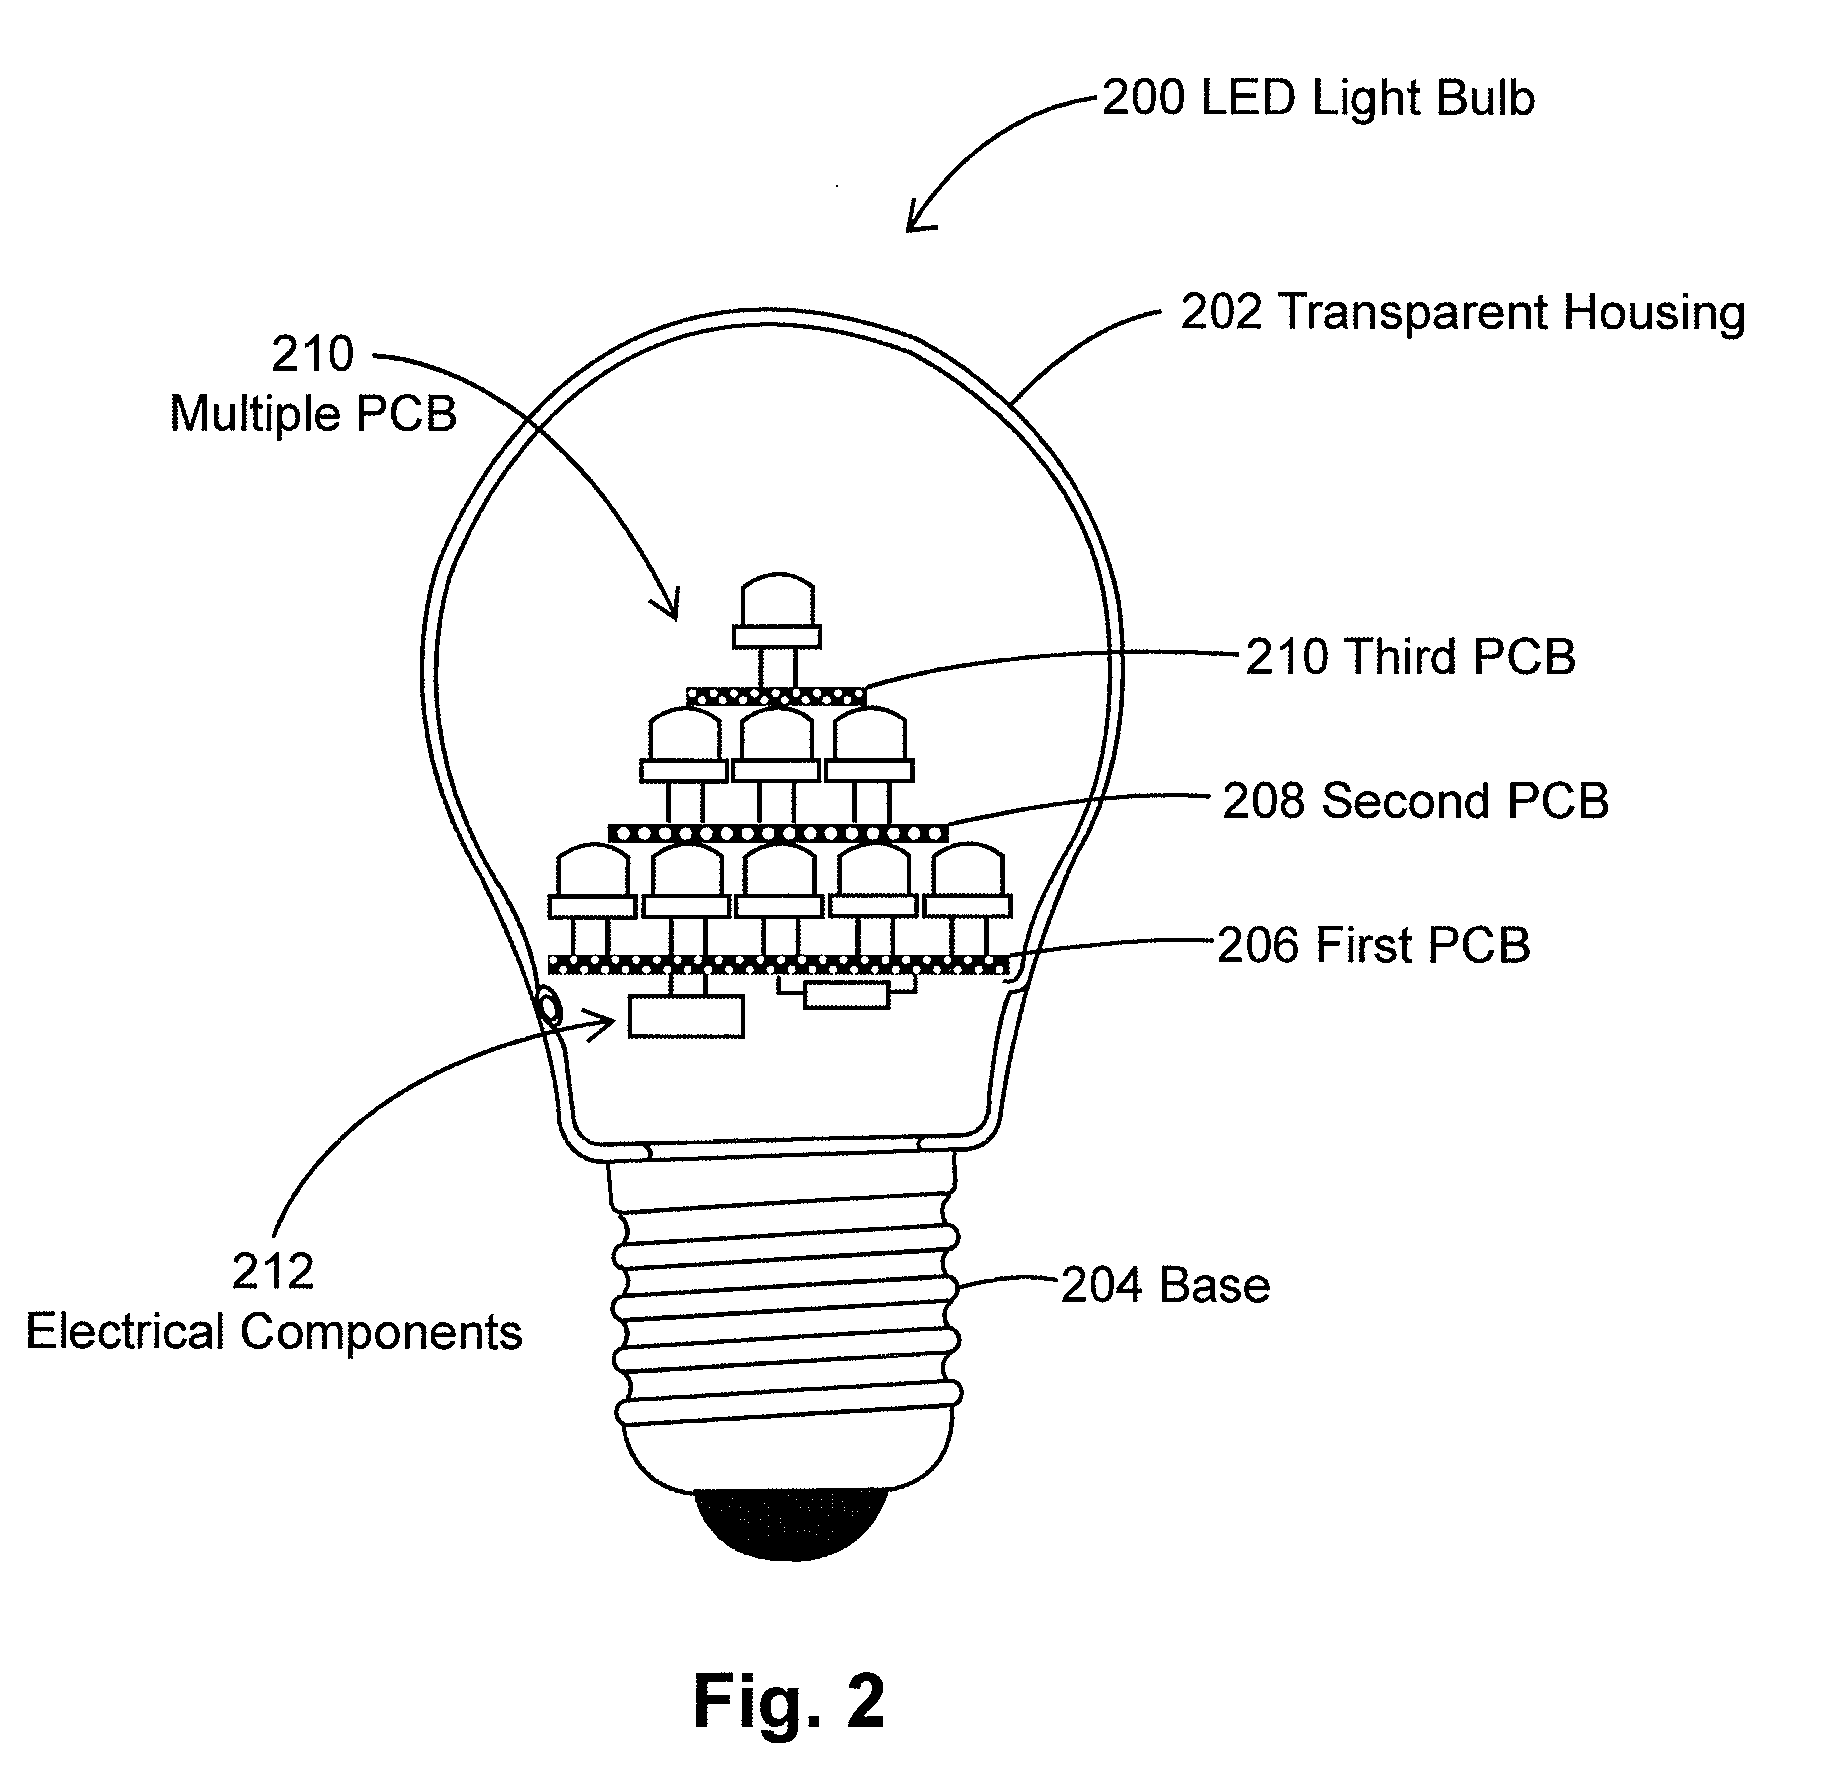 lithonia lighting eu2 led wiring diagram patent us8297787 - led light bulbs in pyramidal structure ...